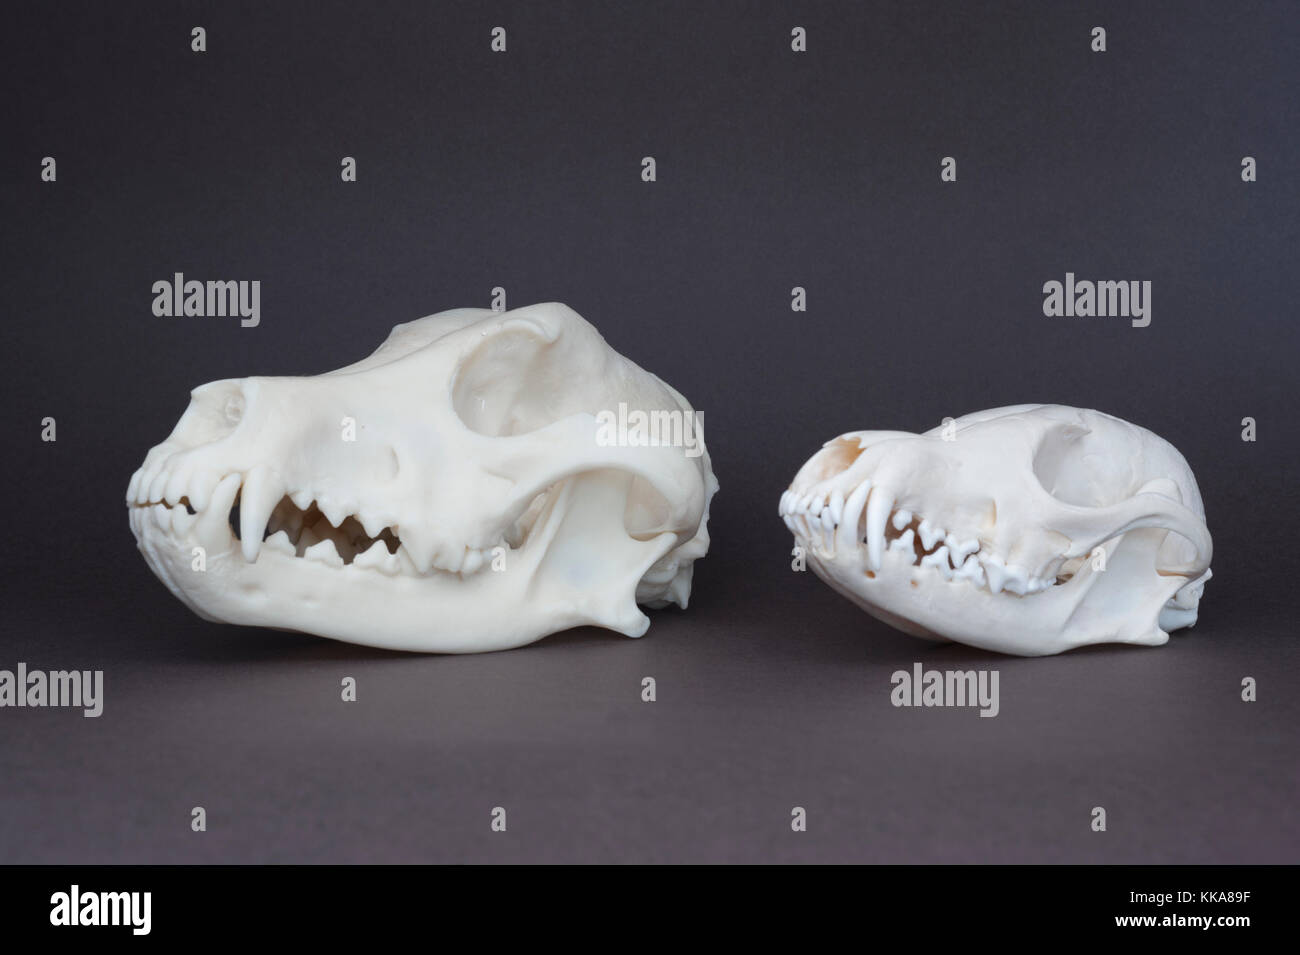 Red fox, (Vulpes vulpes), and domestic dog, (Canis familiaris), skull comparison - Stock Image